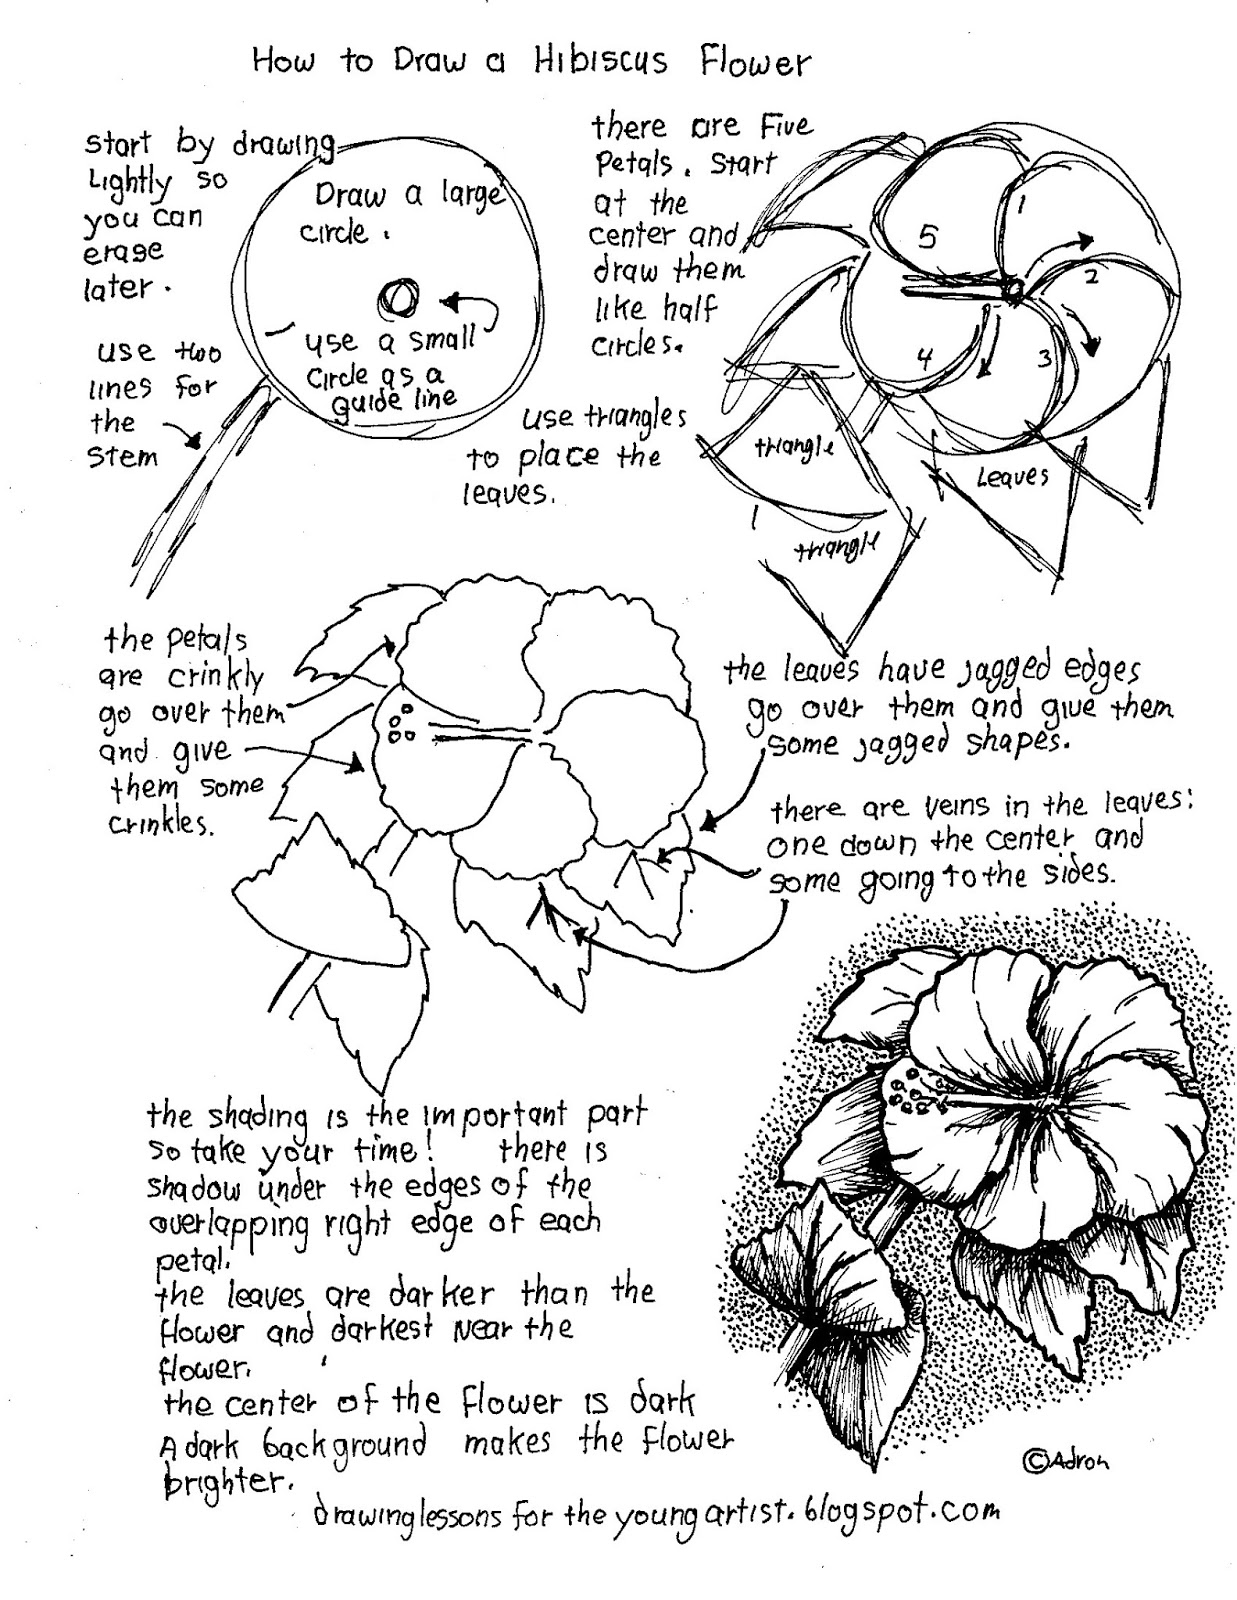 how to draw hibiscus how to draw a hibiscus flower step by step drawing draw how hibiscus to